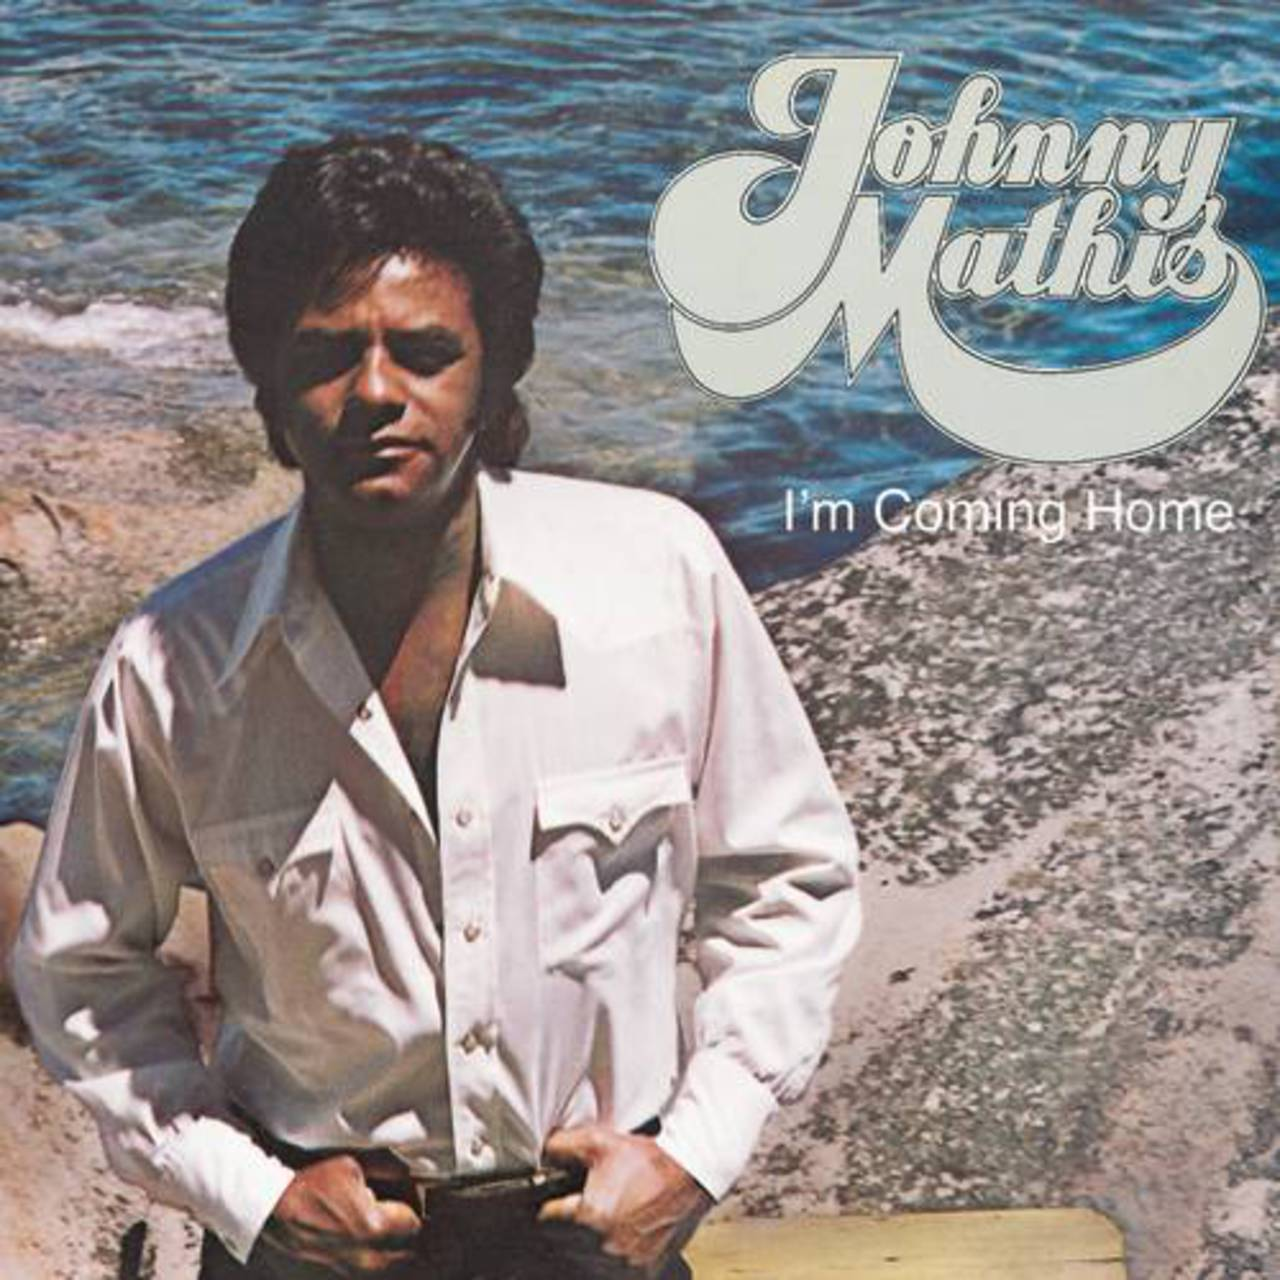 1973 Johnny Mathis I'm Comming Home